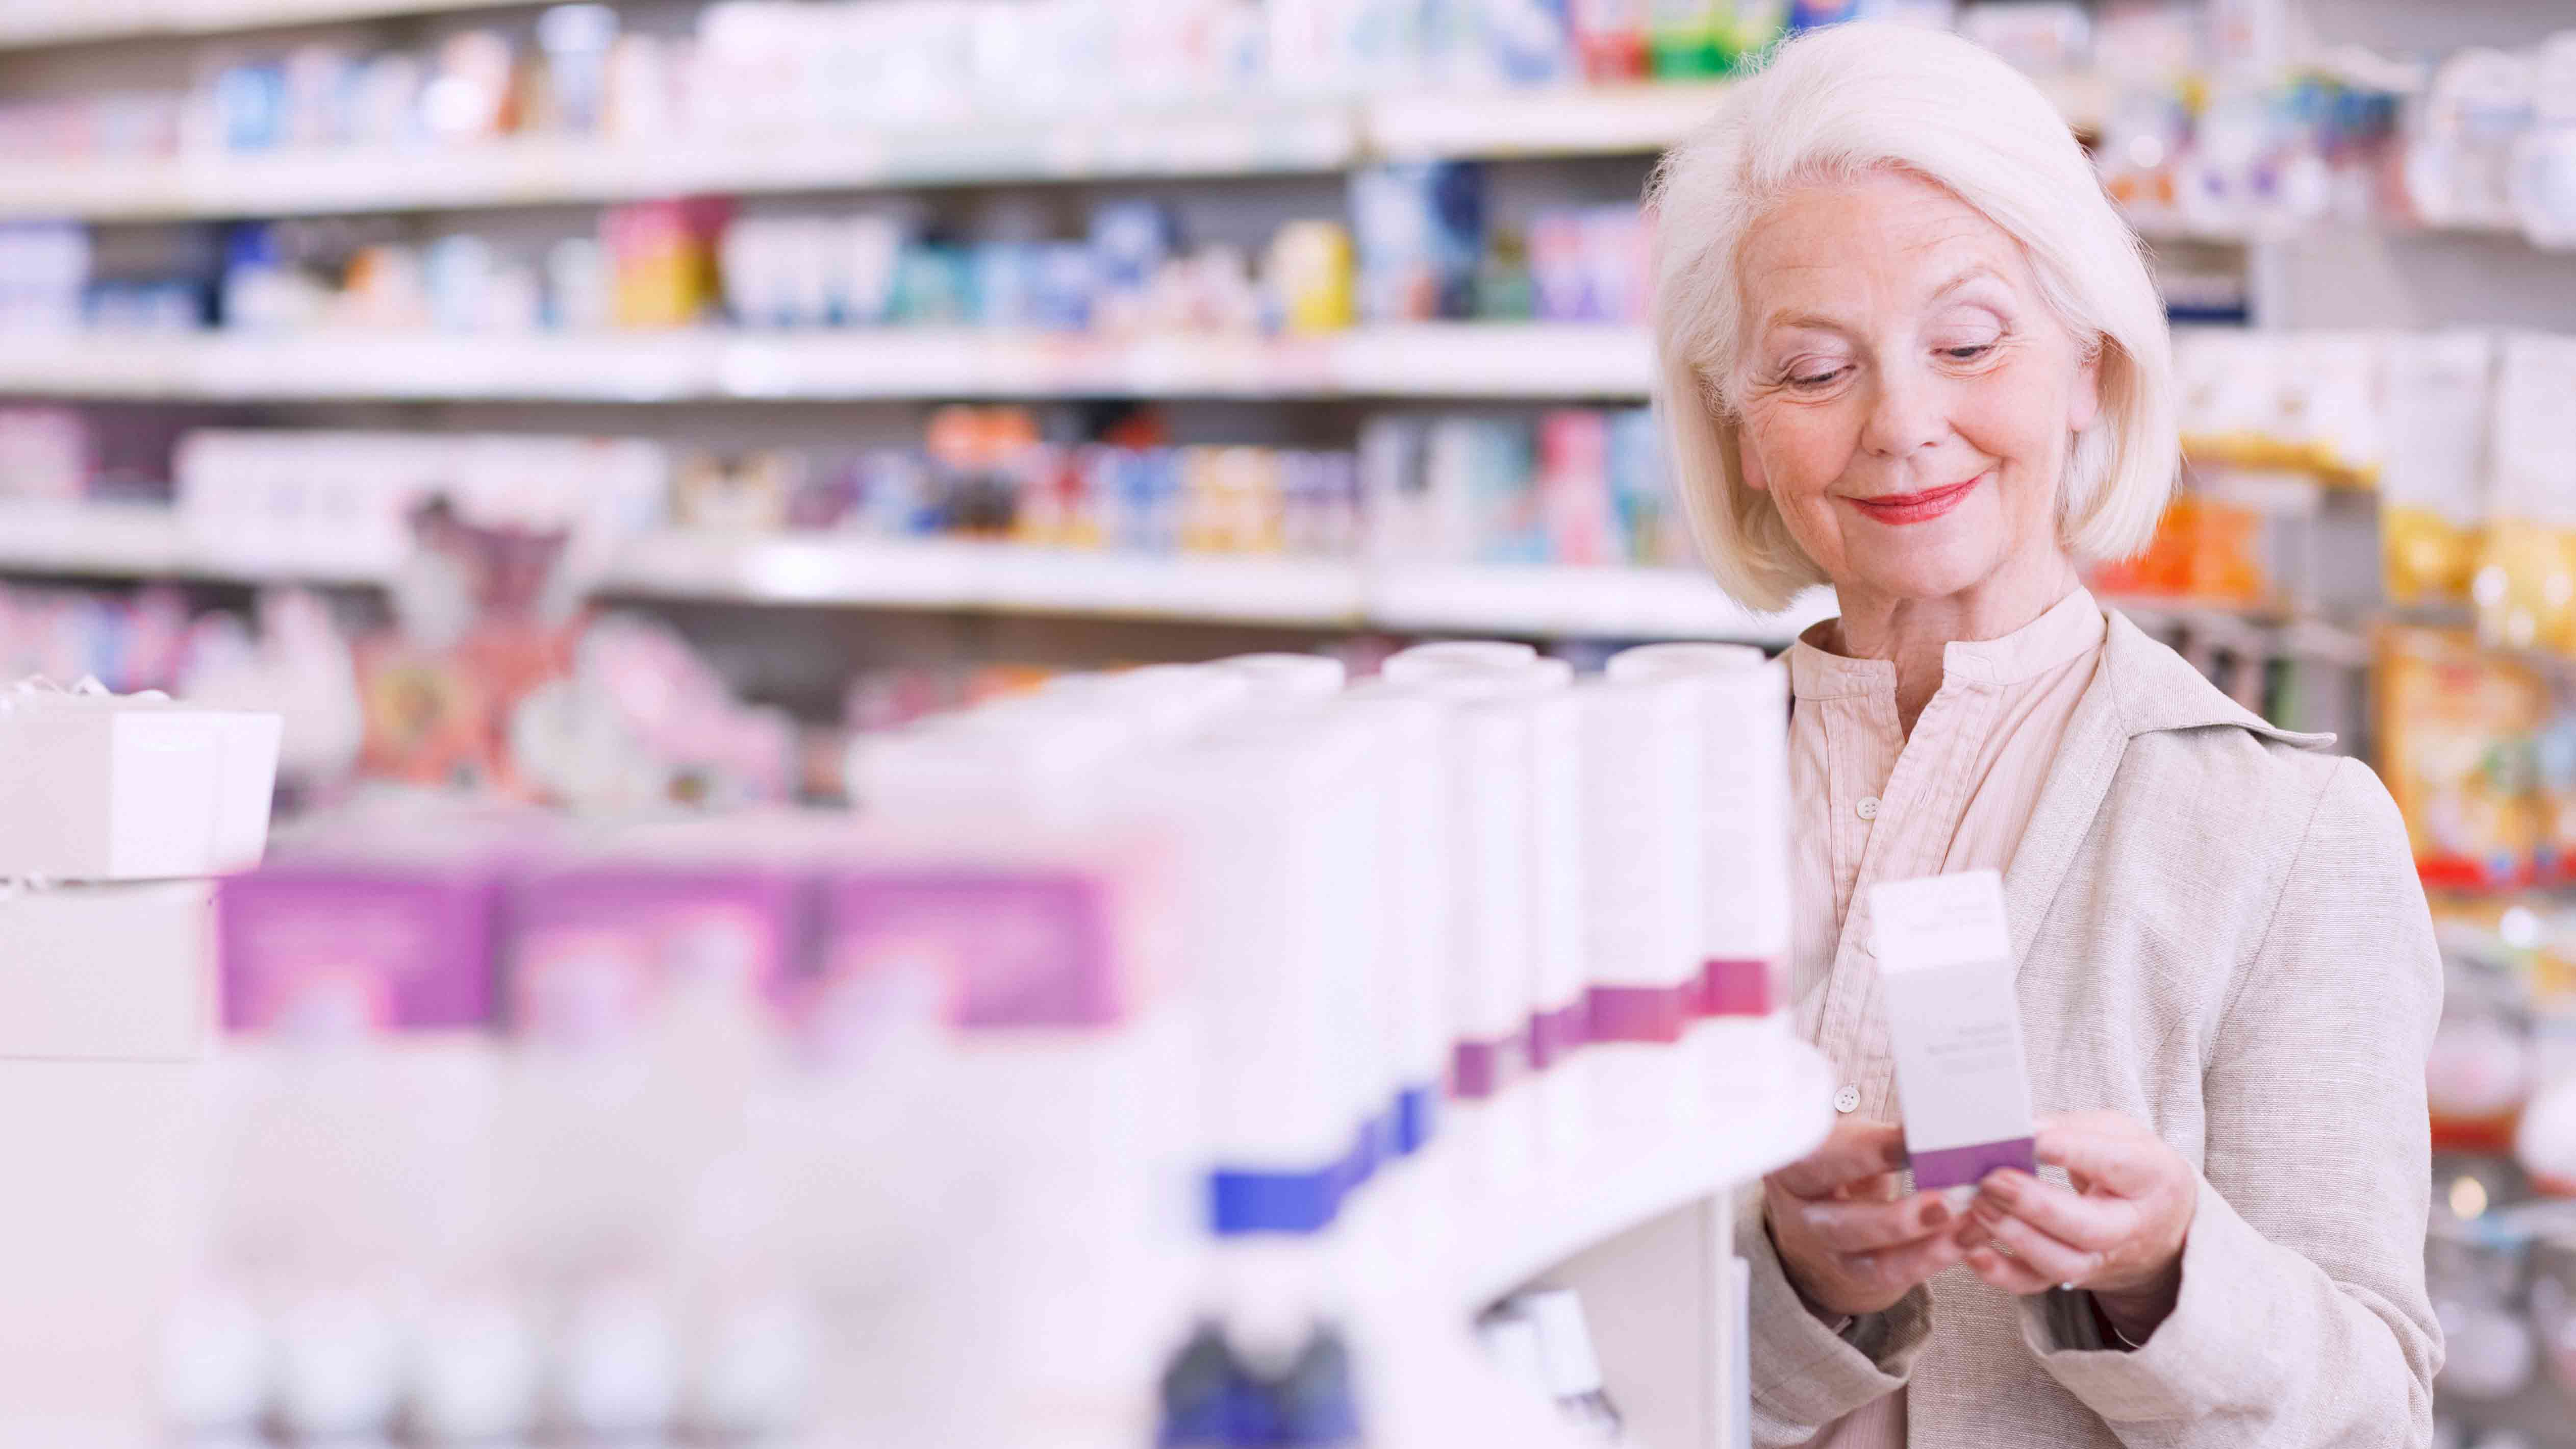 Woman shops at pharmacy